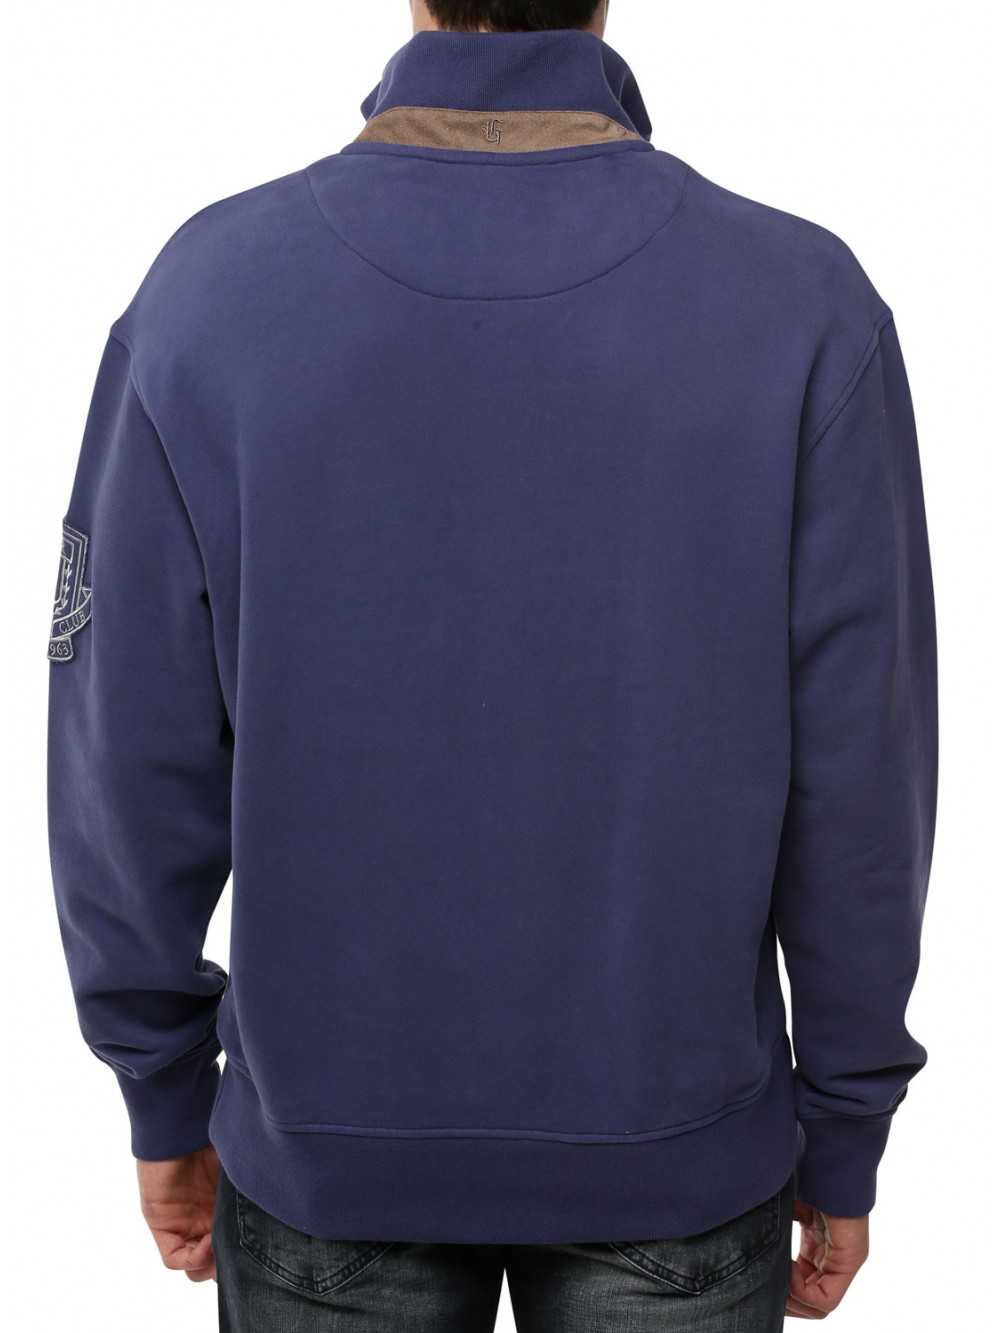 Mens Sweatshirt GALAXY blue